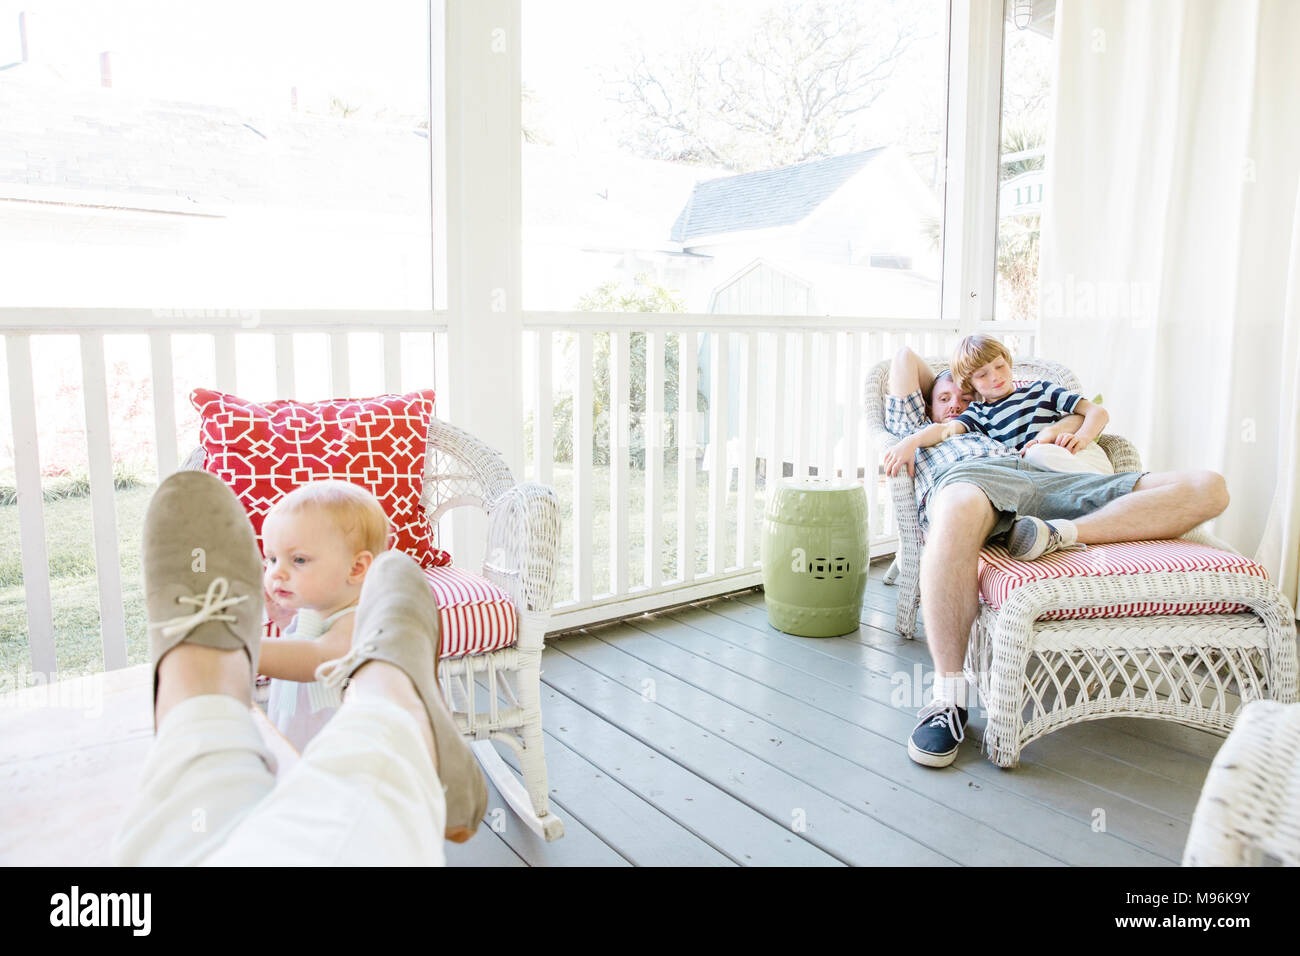 Family relaxing on porch Photo Stock